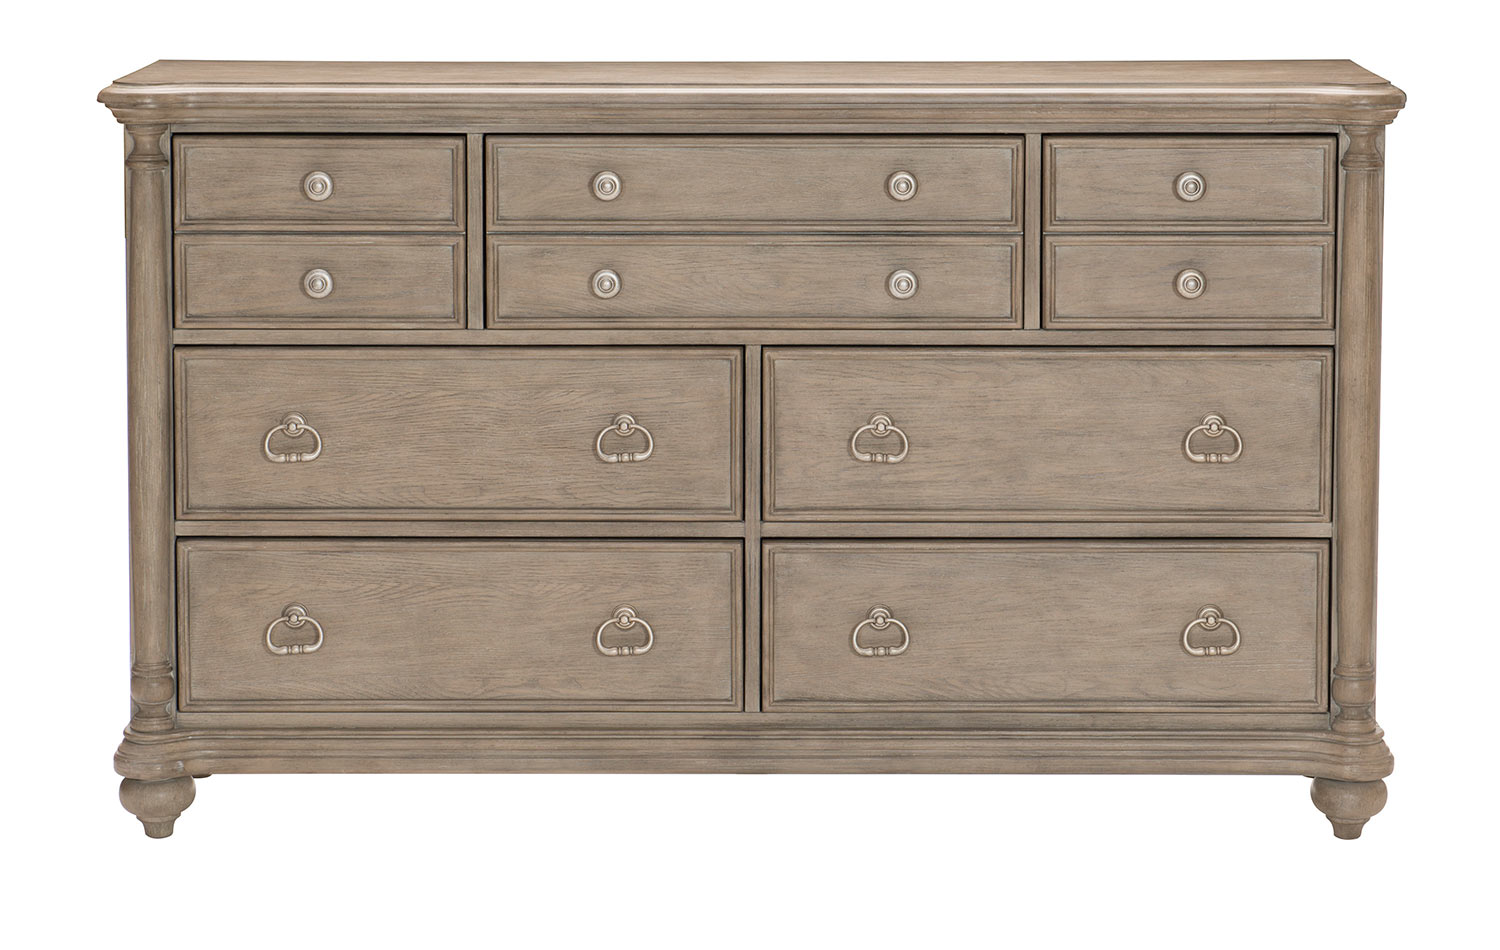 Homelegance Grayling Downs Dresser - Driftwood Gray